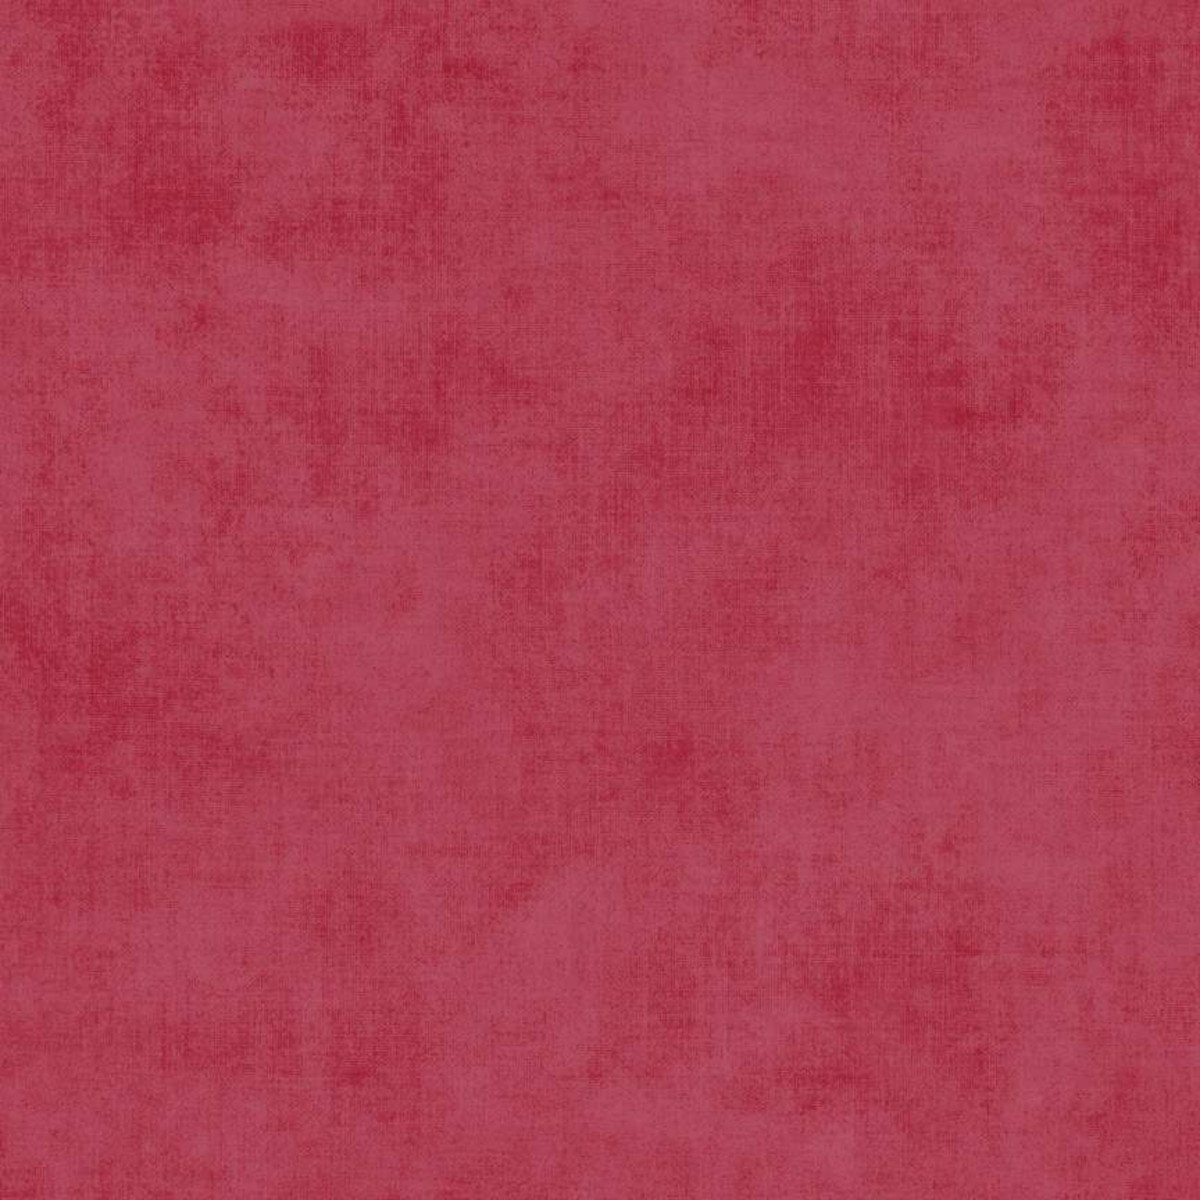 Flannel Shade - Wagon Red